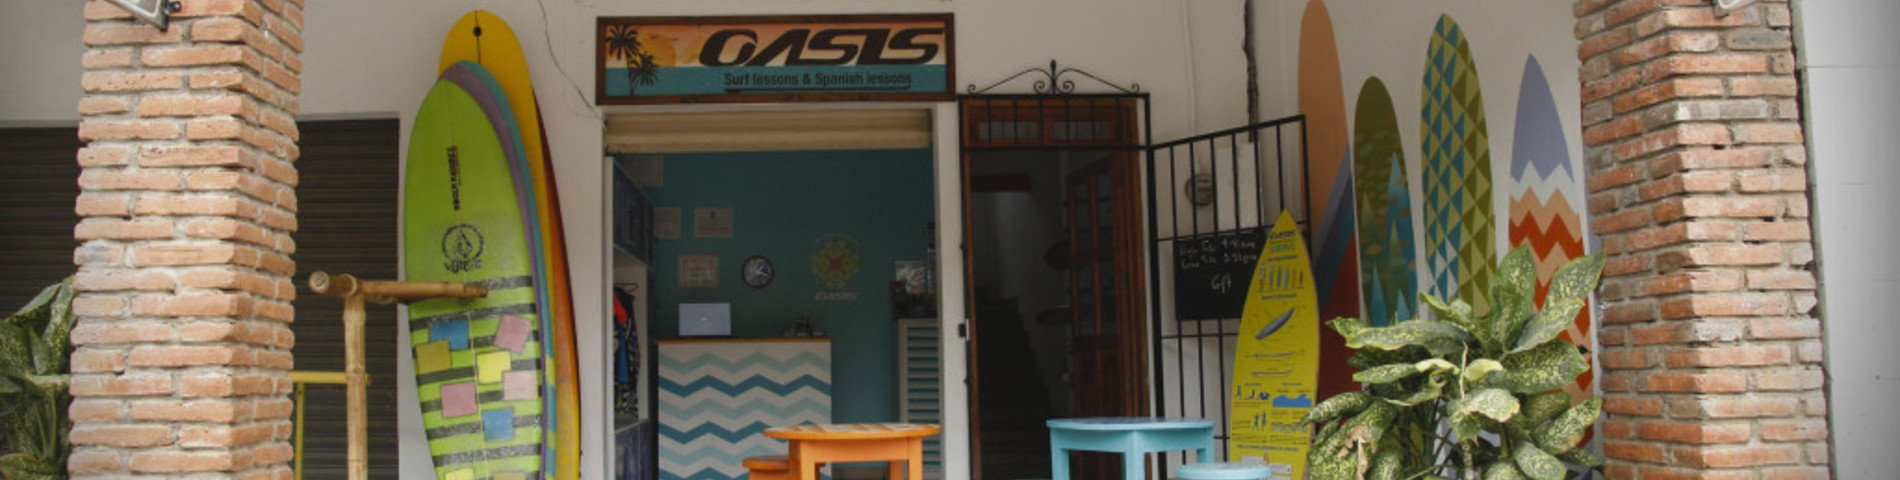 Oasis Language School billede 1